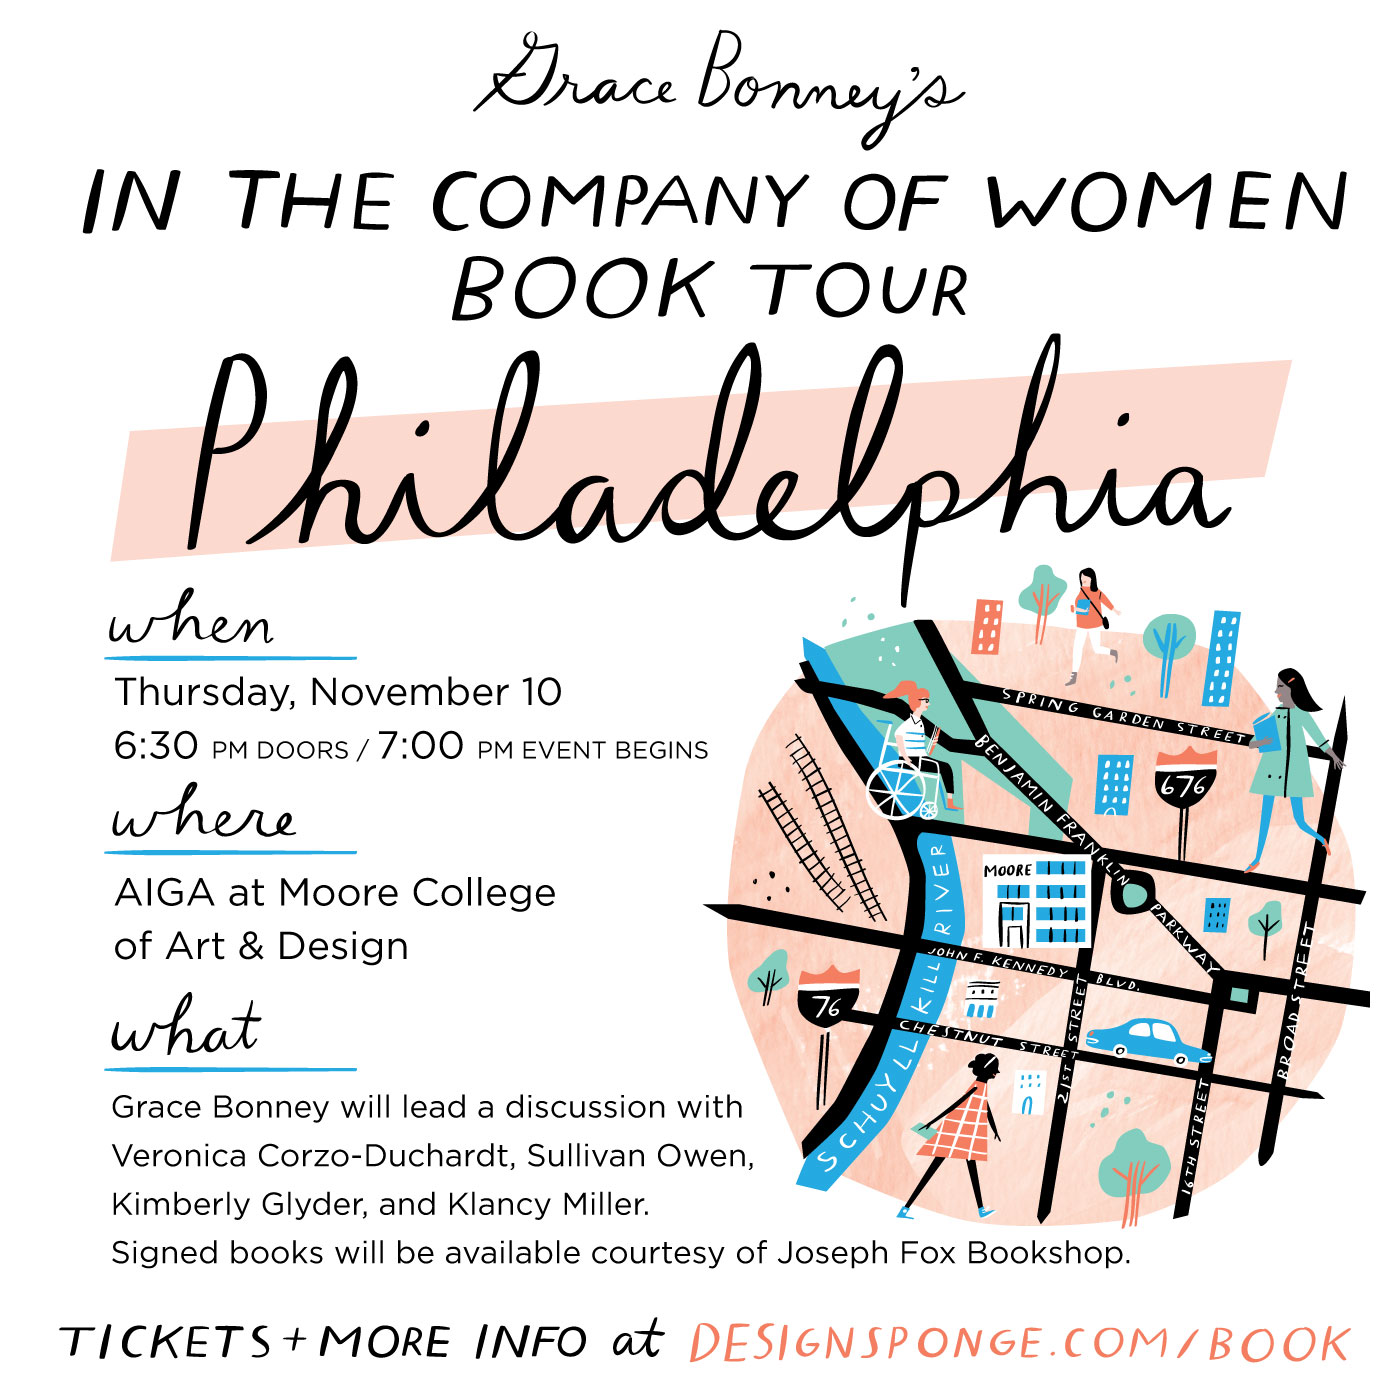 itcow_booktour_promos_cities_philly